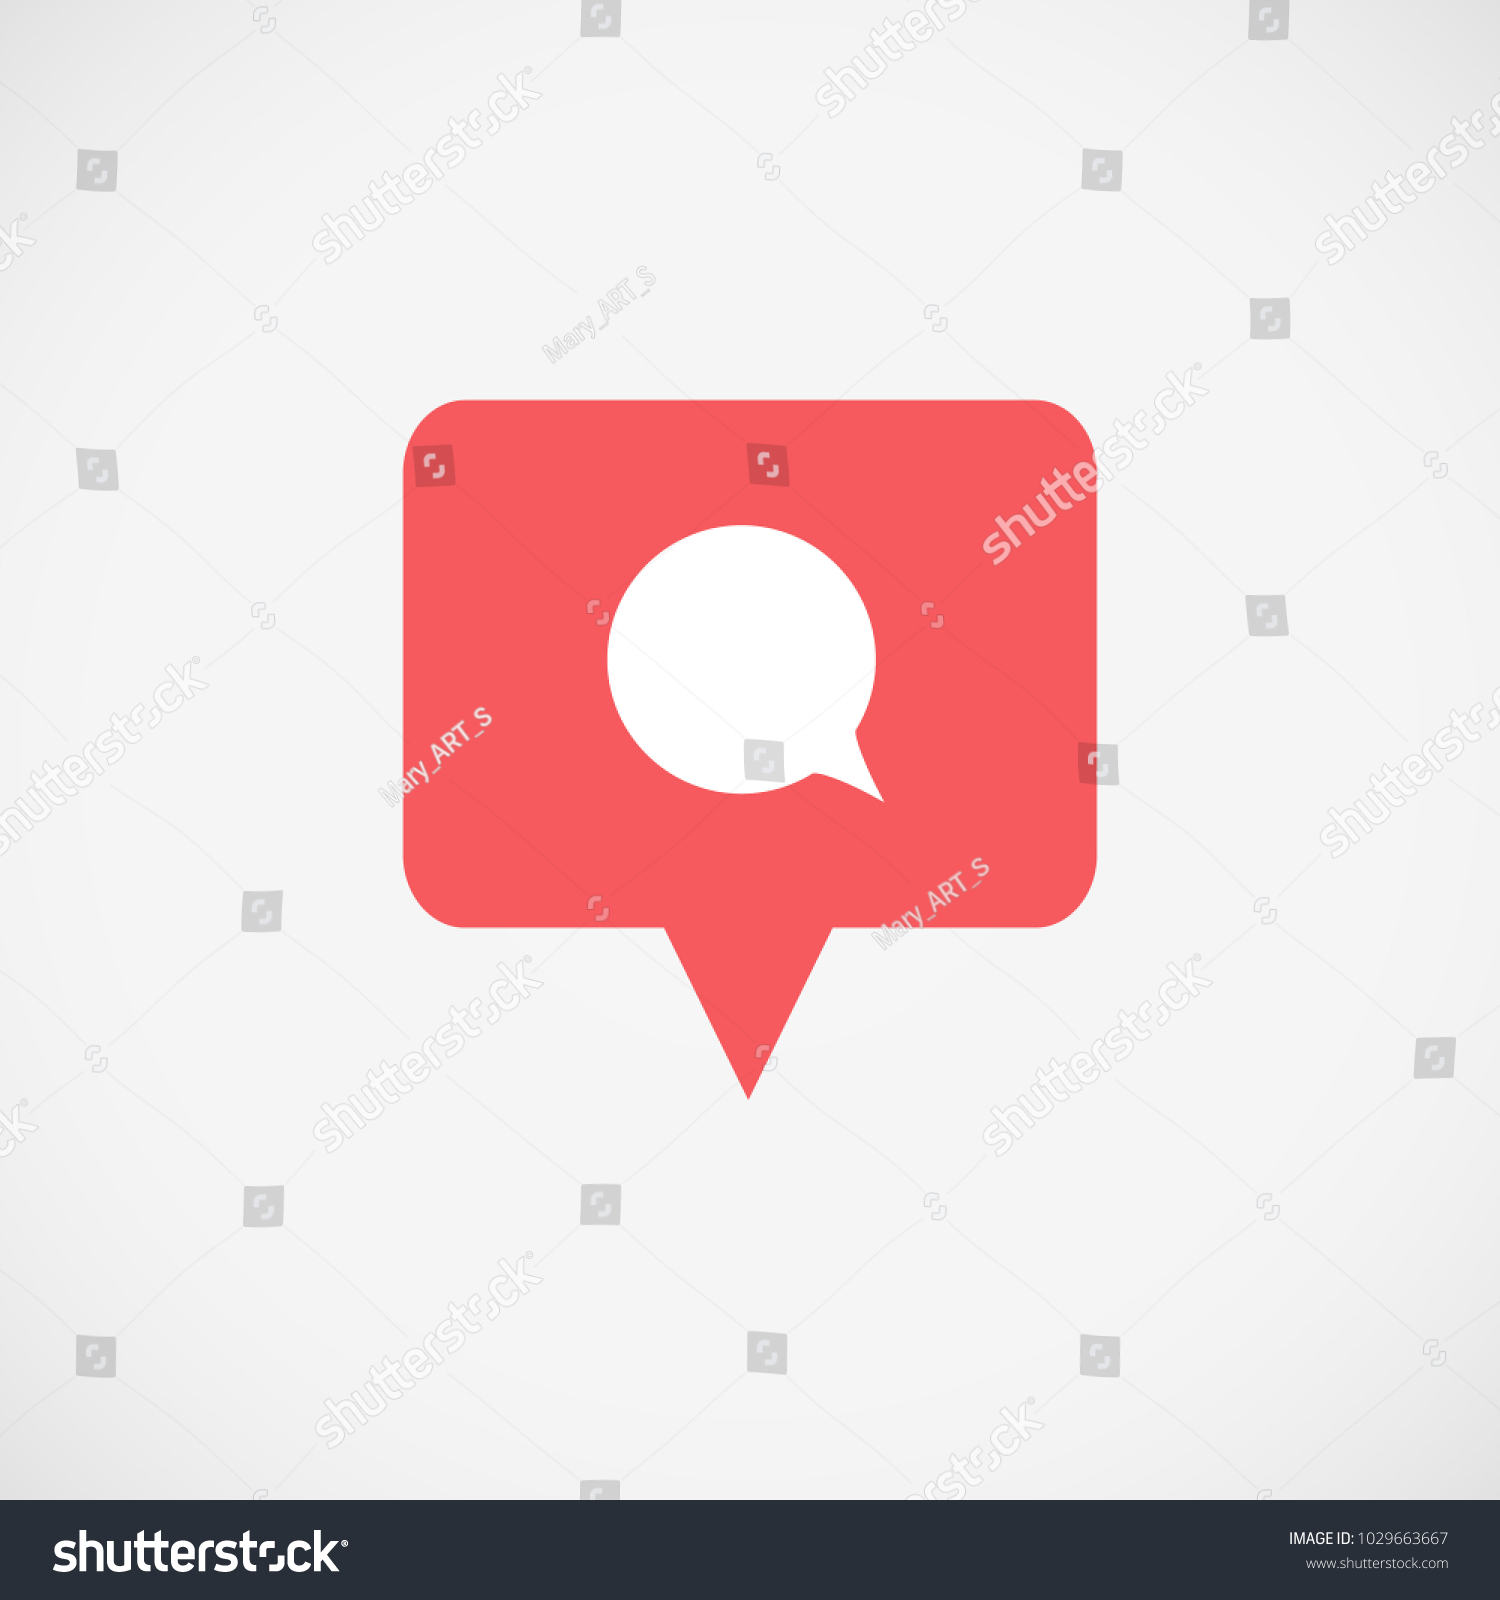 Instagram symbol text gallery symbol and sign ideas social media instagram icon comment red stock vector 1029663667 social media instagram icon comment red color buycottarizona